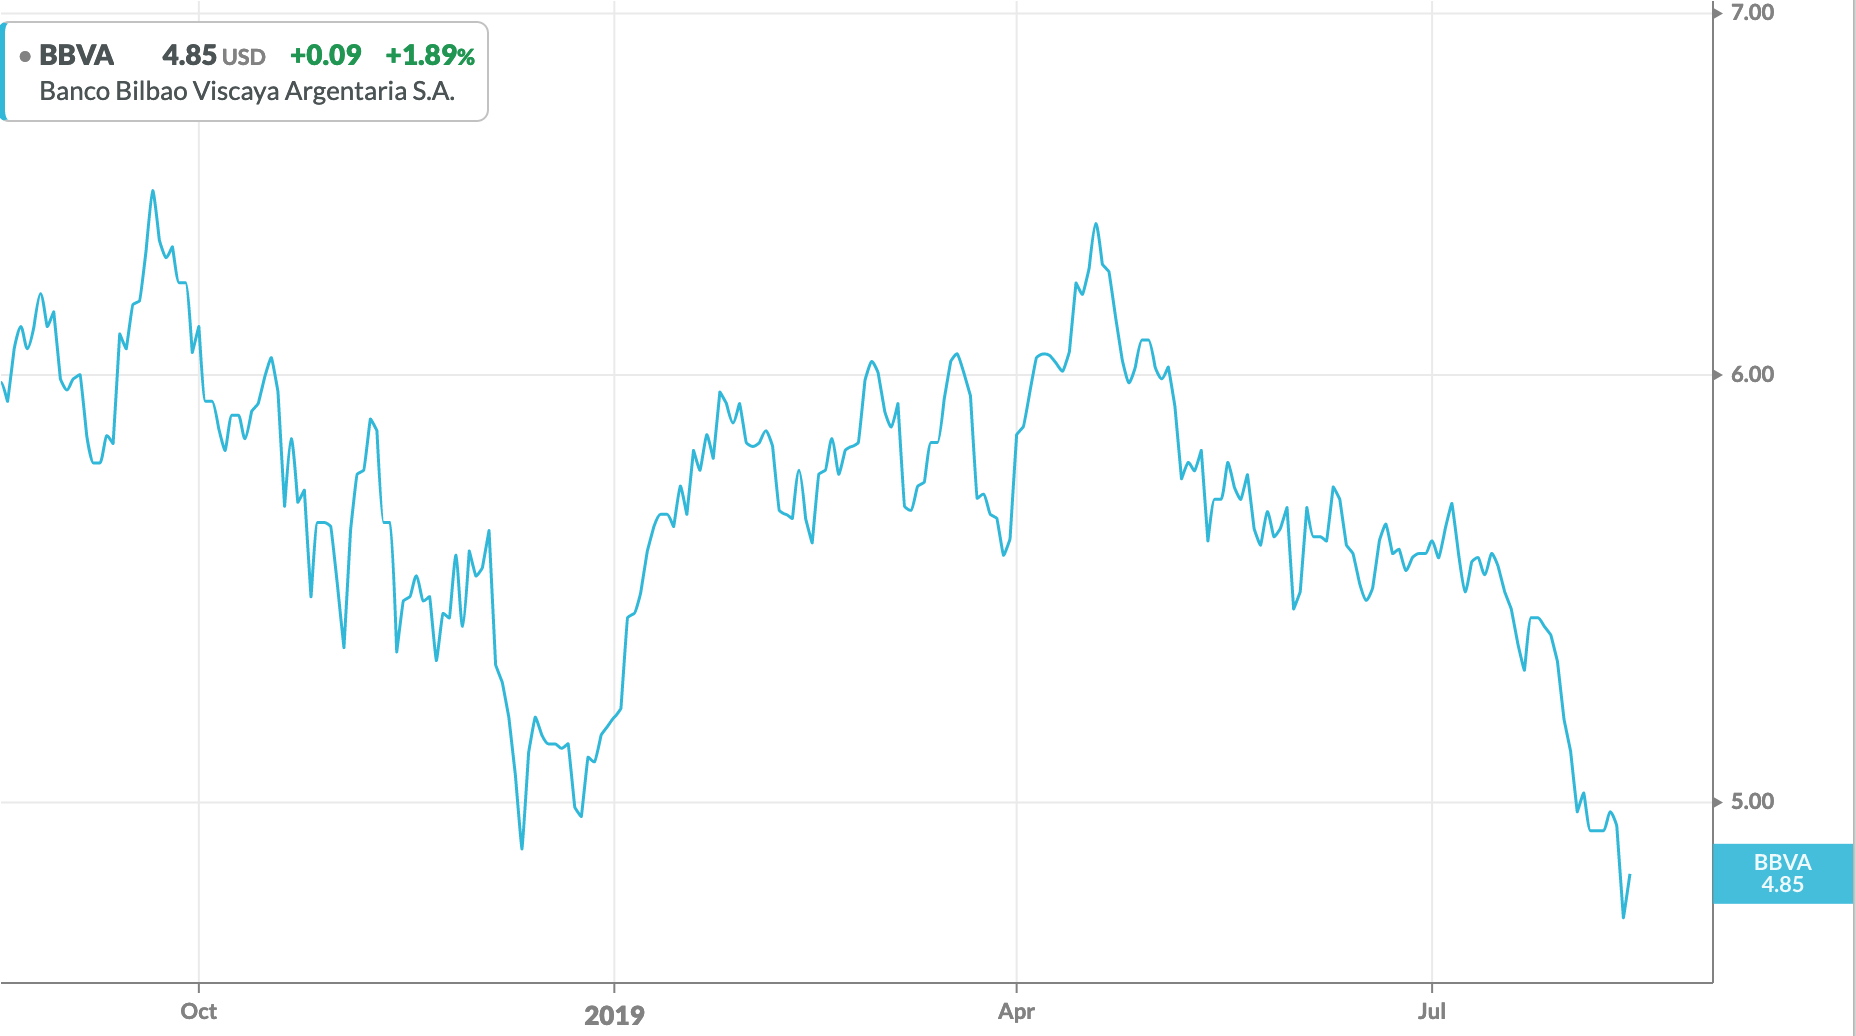 Banco Bilbao Vizcaya Argentaria: Depressed Share Prices Offer Long-Term Buying Opportunity